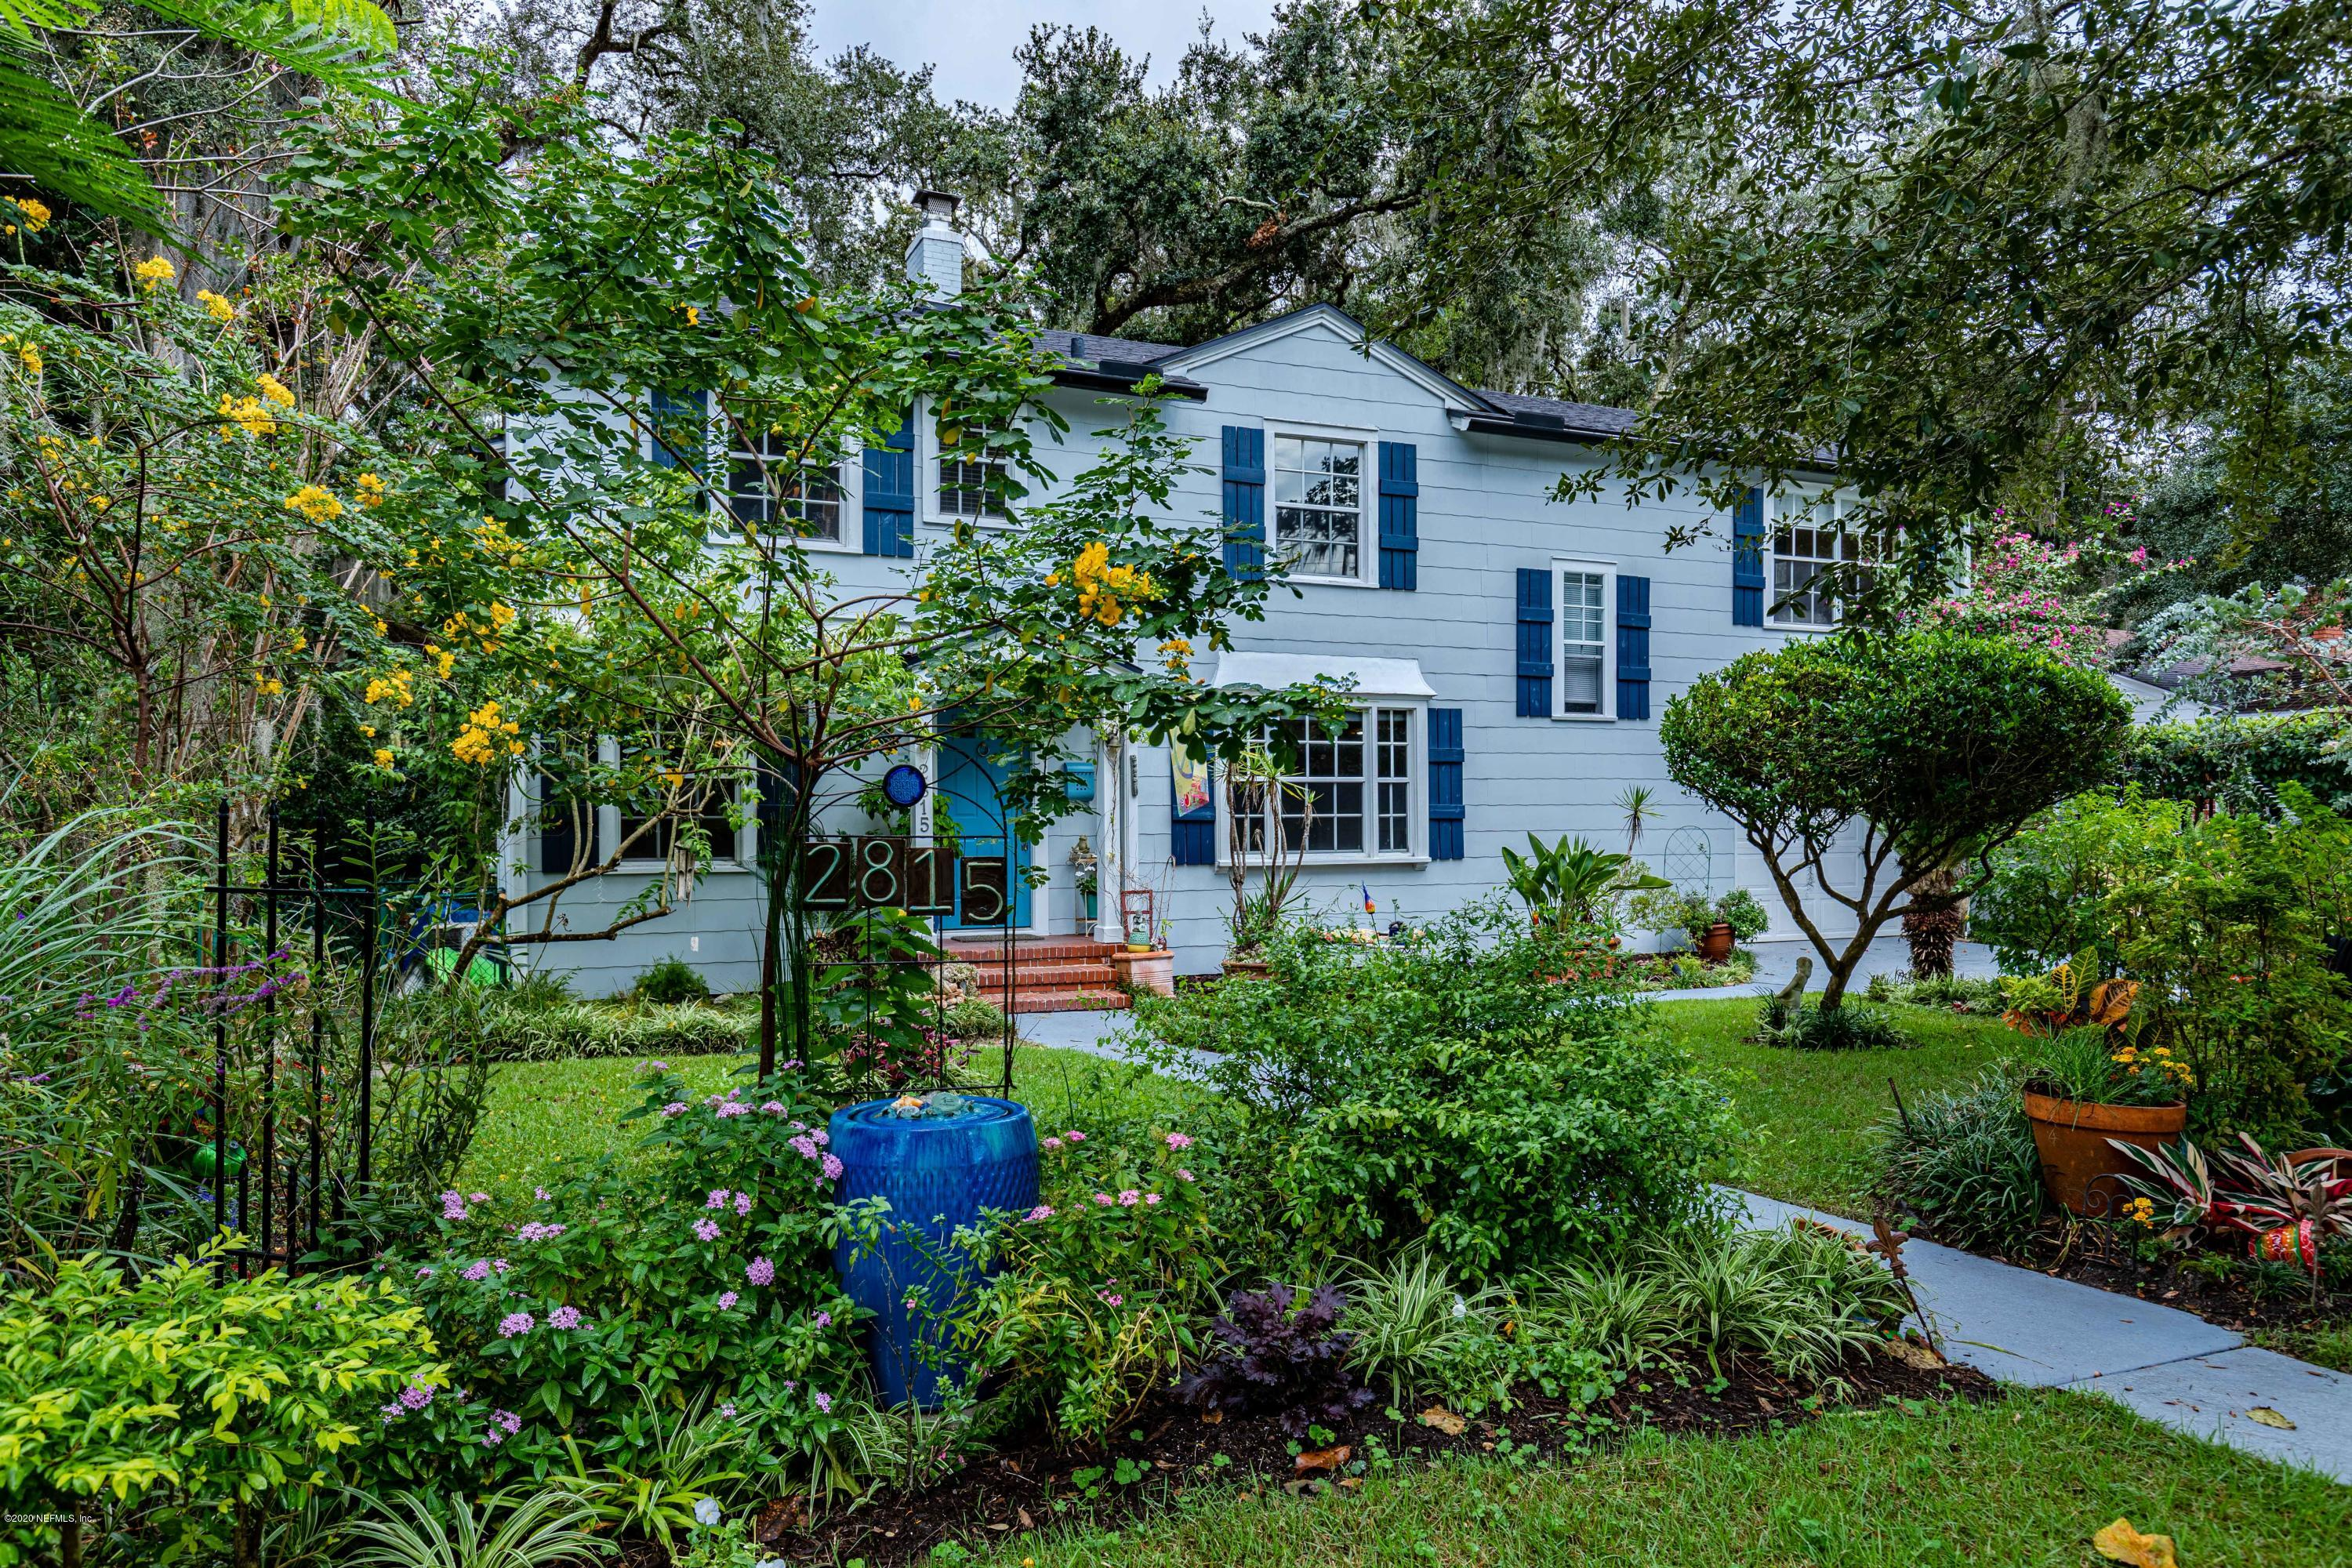 2815 CORINTHIAN, JACKSONVILLE, FLORIDA 32210, 4 Bedrooms Bedrooms, ,2 BathroomsBathrooms,Residential,For sale,CORINTHIAN,1081389